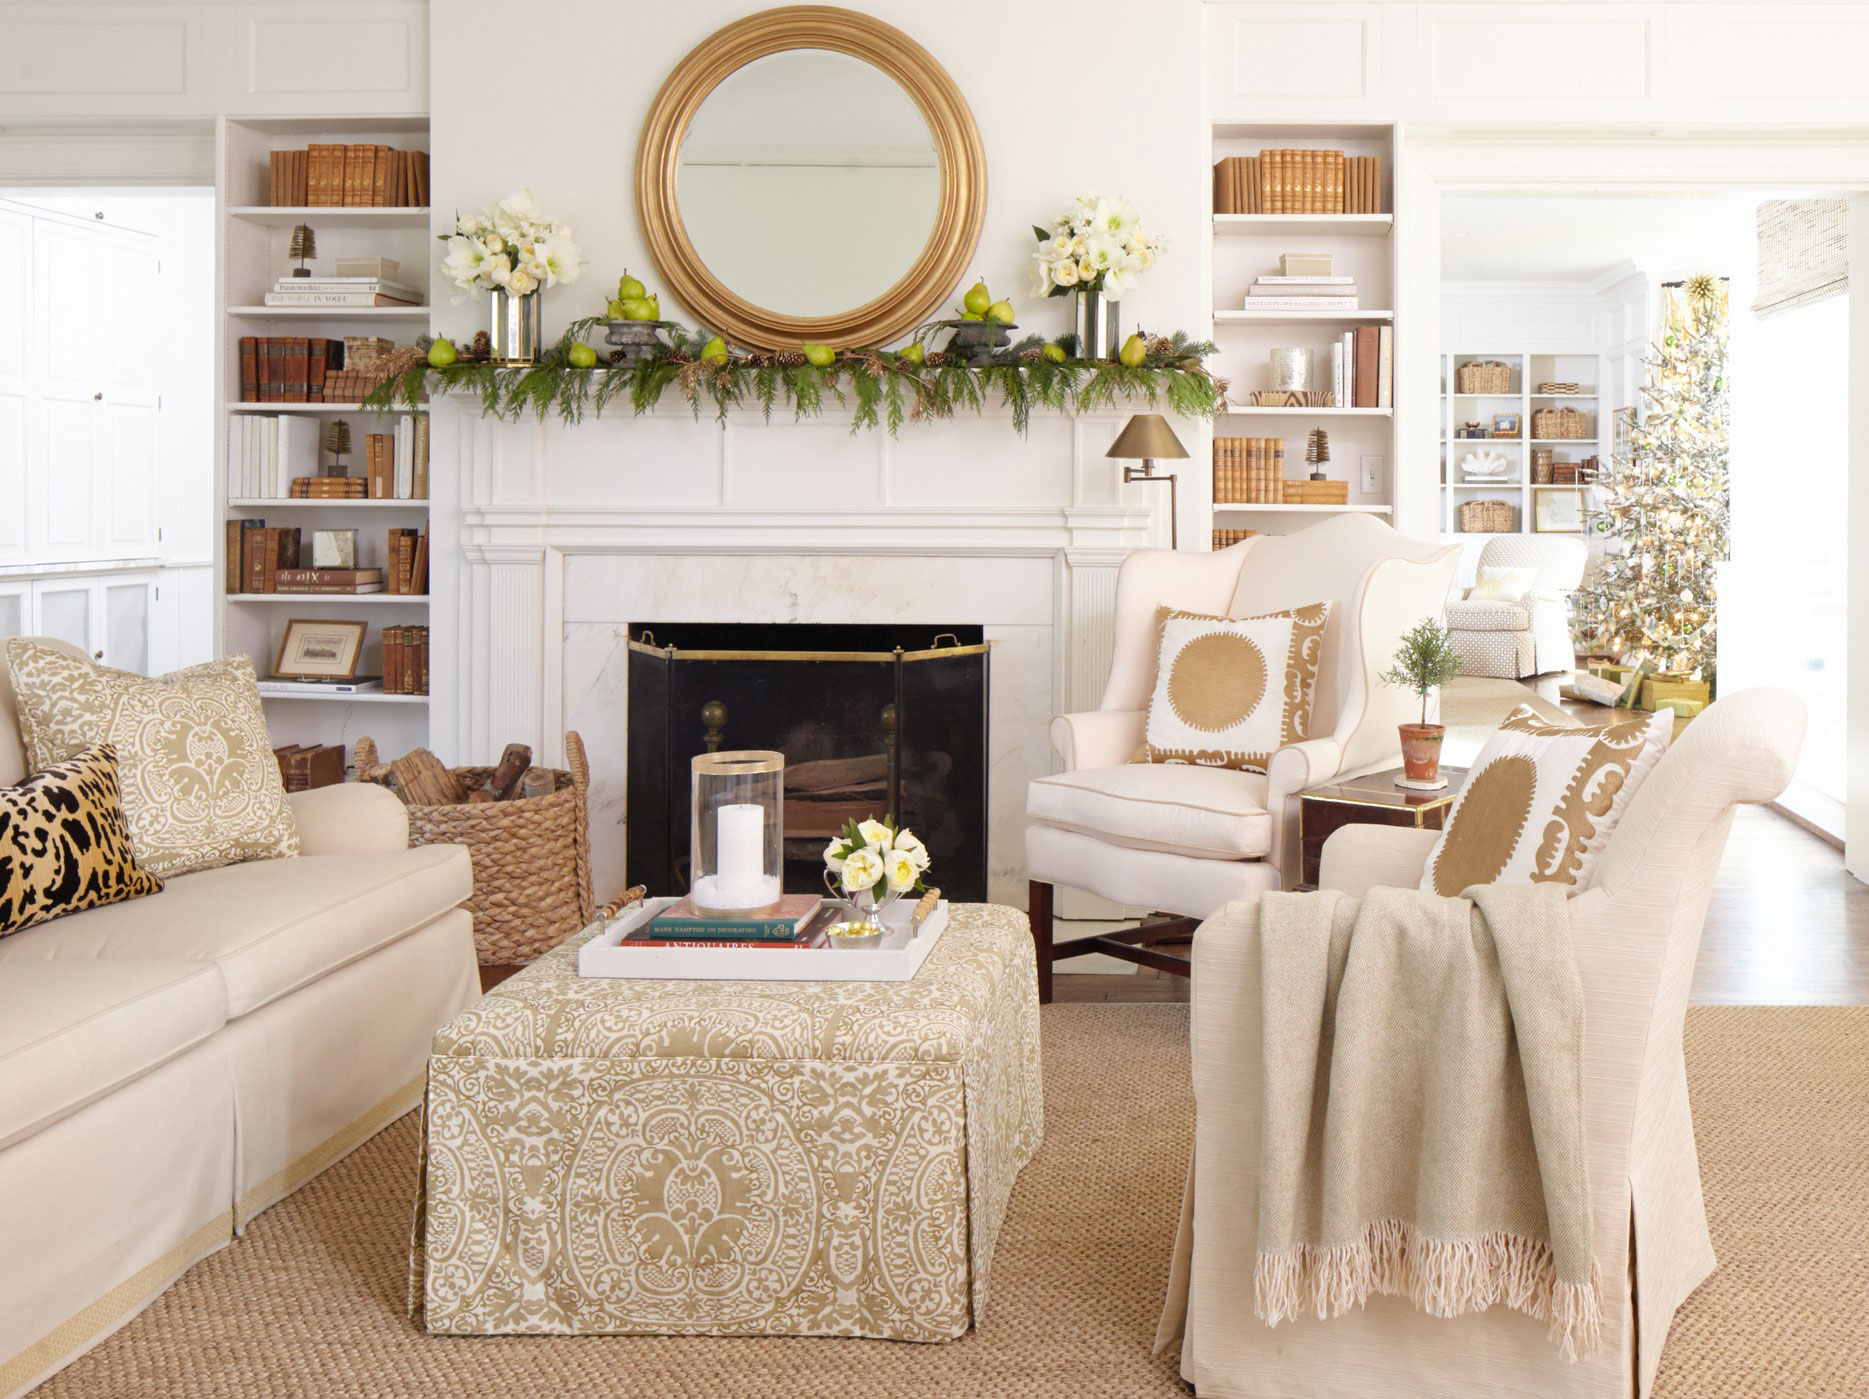 Design Ideas for Neutral Holiday Decorations | Traditional Home